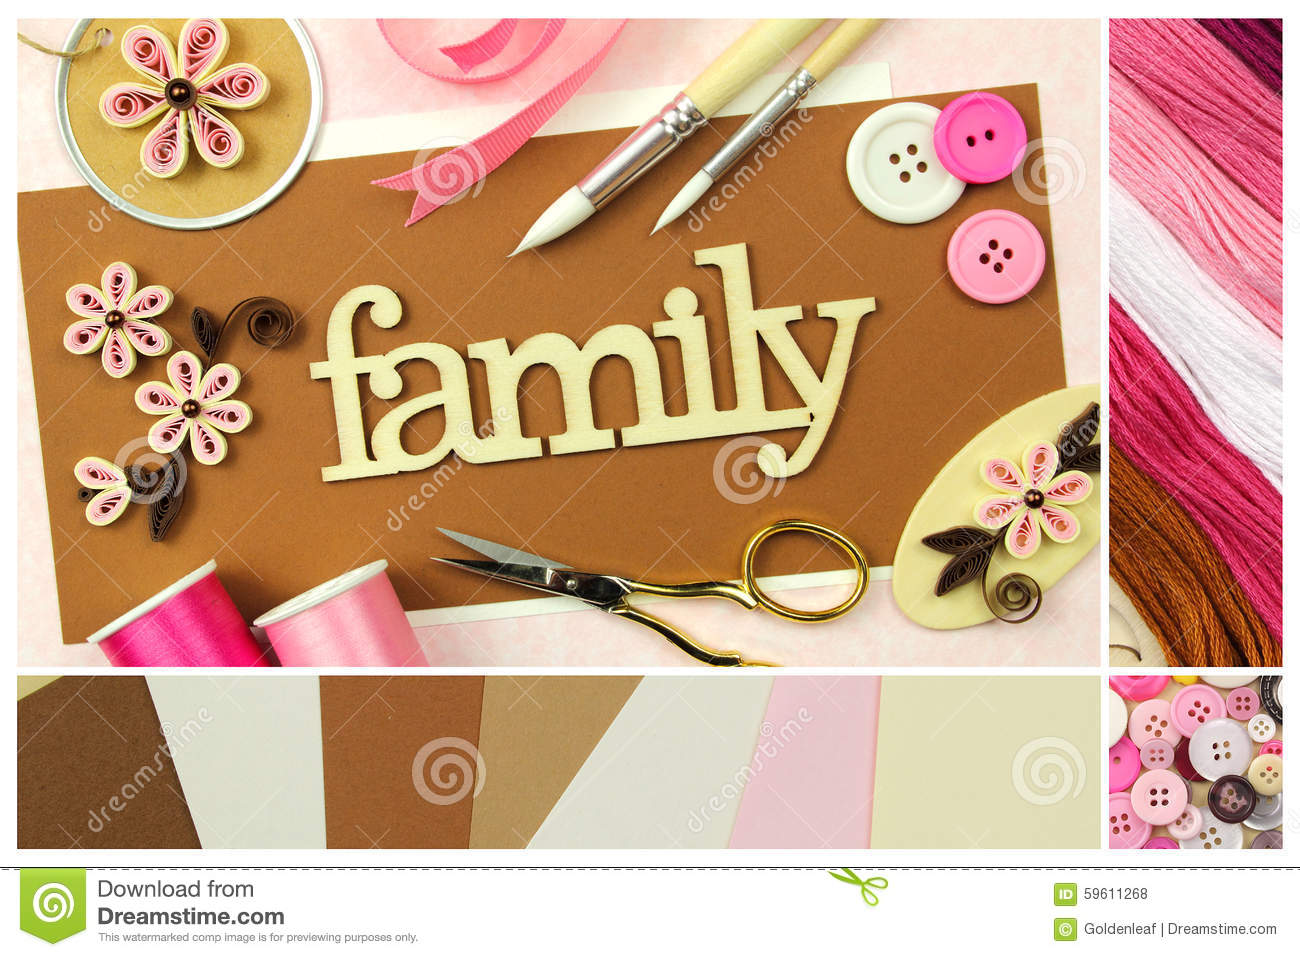 Scrapbooking tools and materials stock photo image of creativity royalty free stock photo m4hsunfo